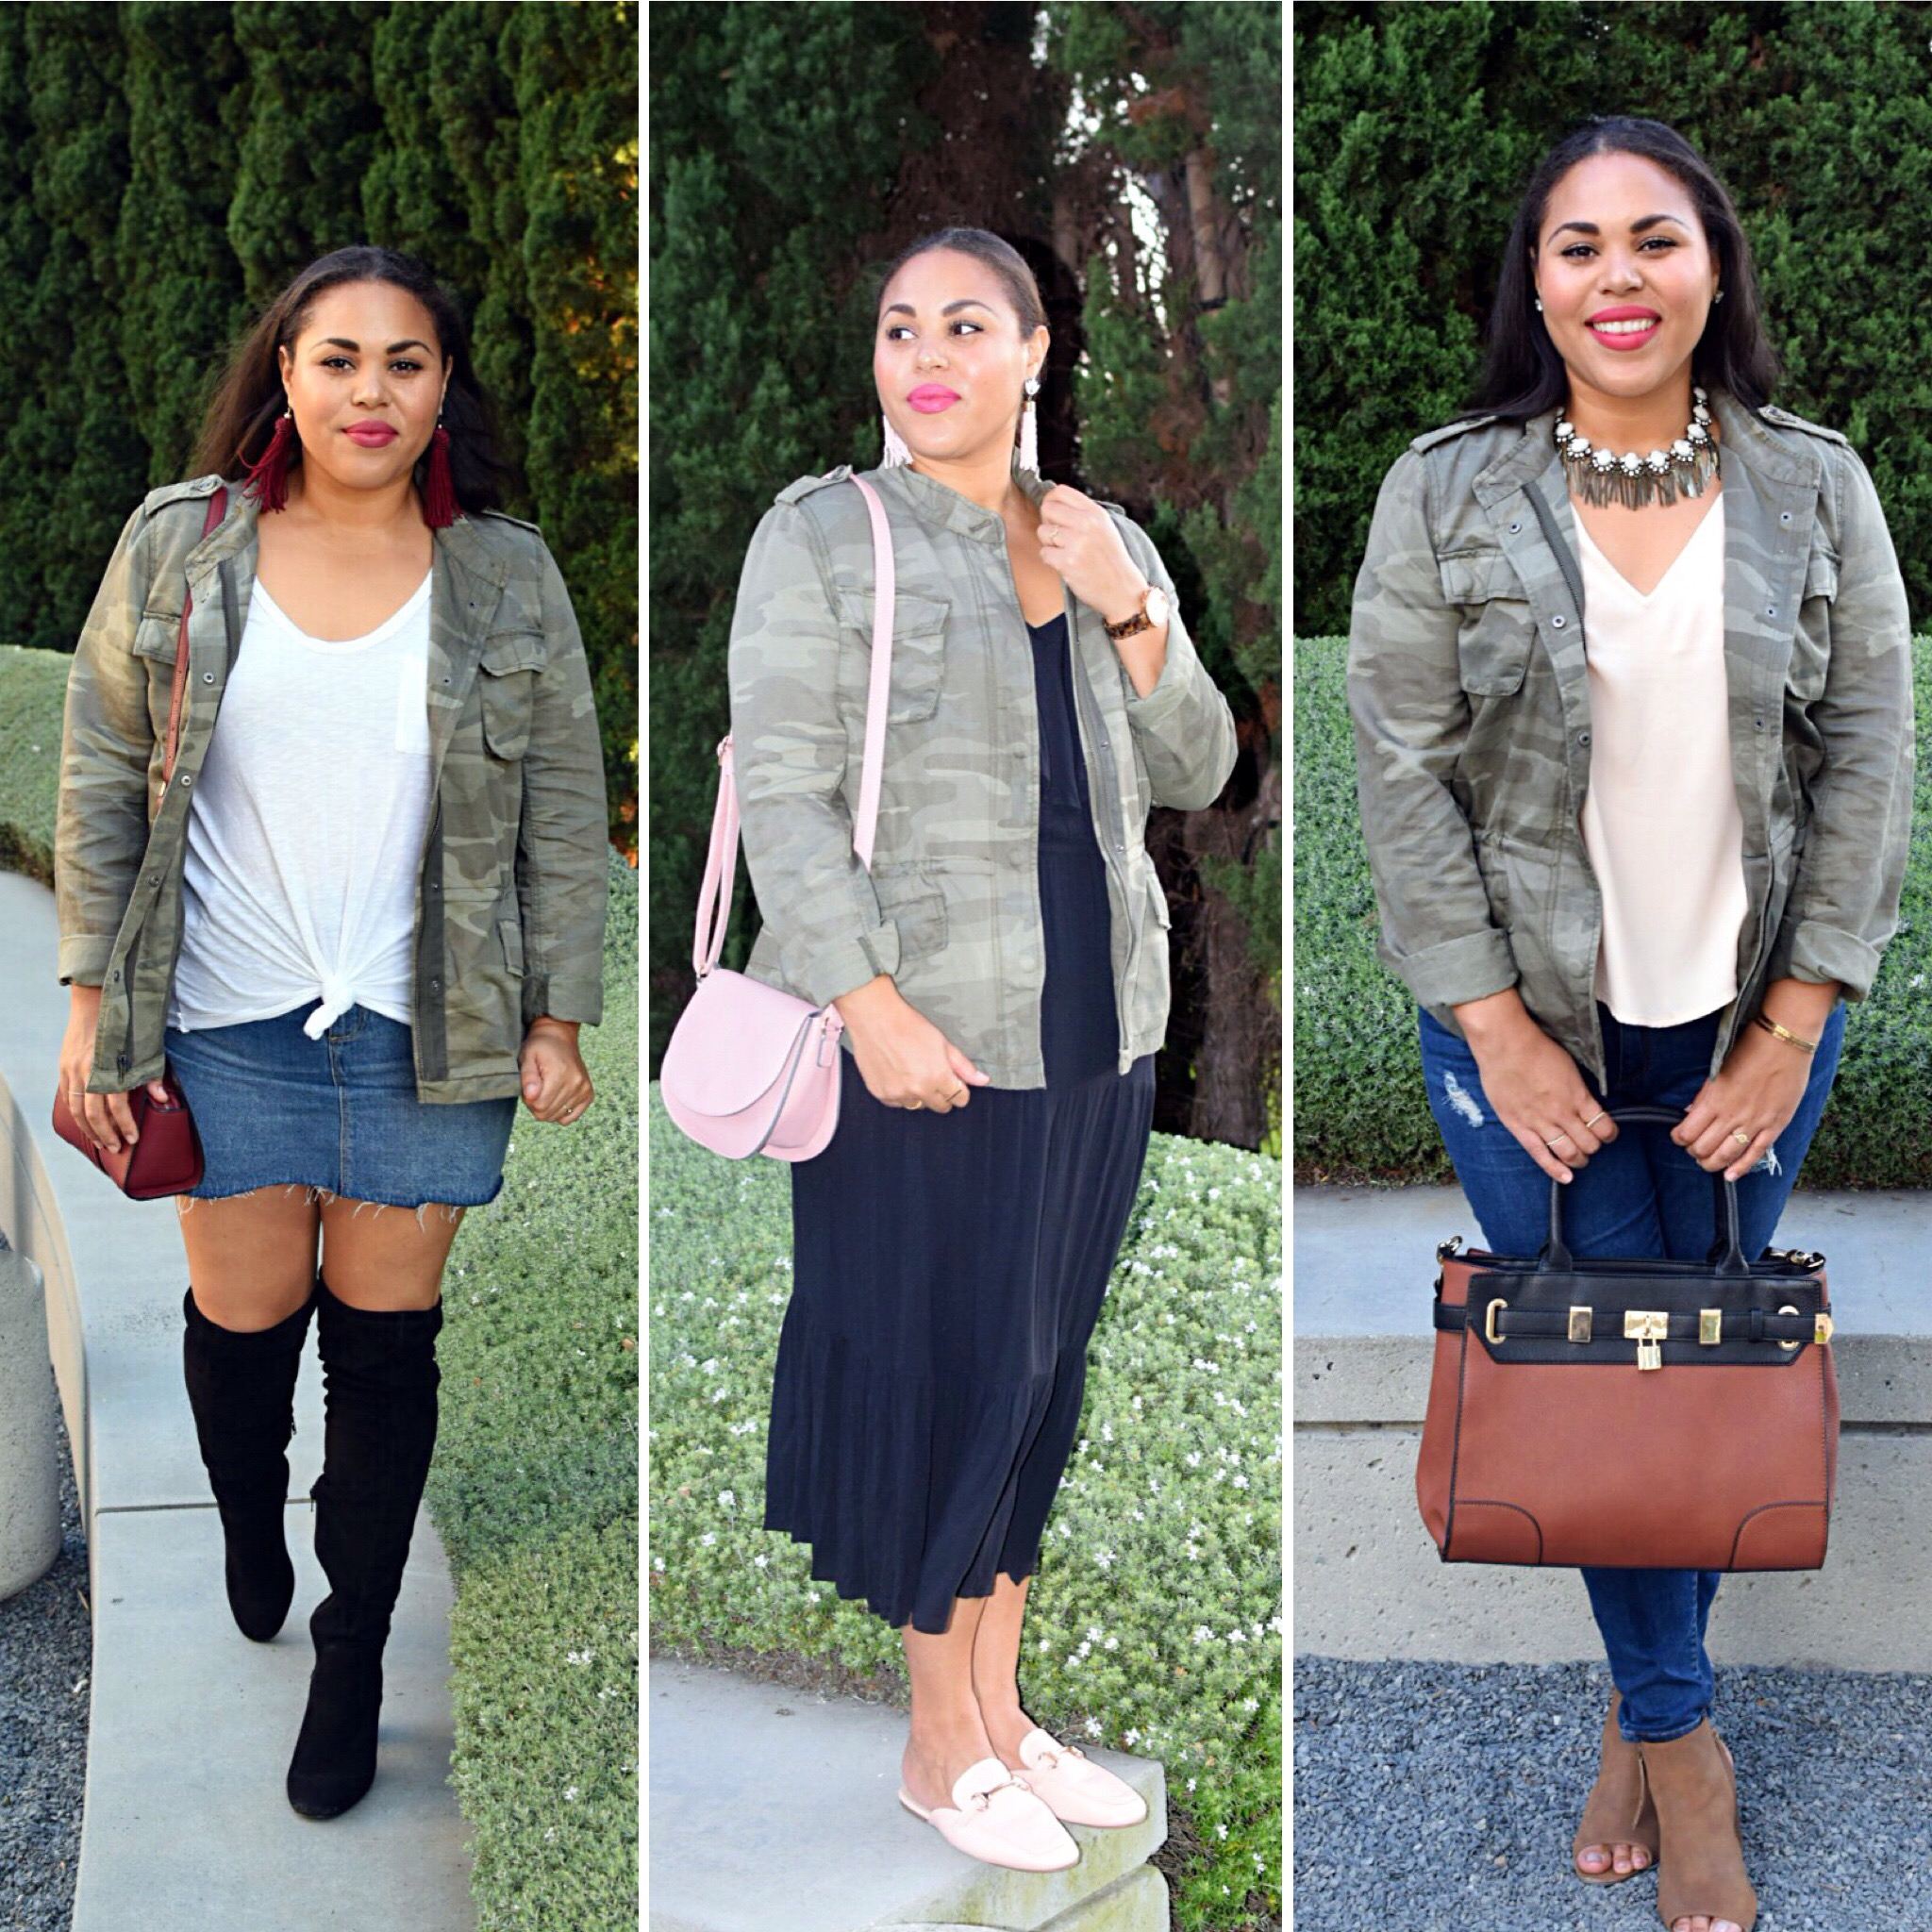 How to Wear Camo: Styling a Camo Jacket 3 Ways